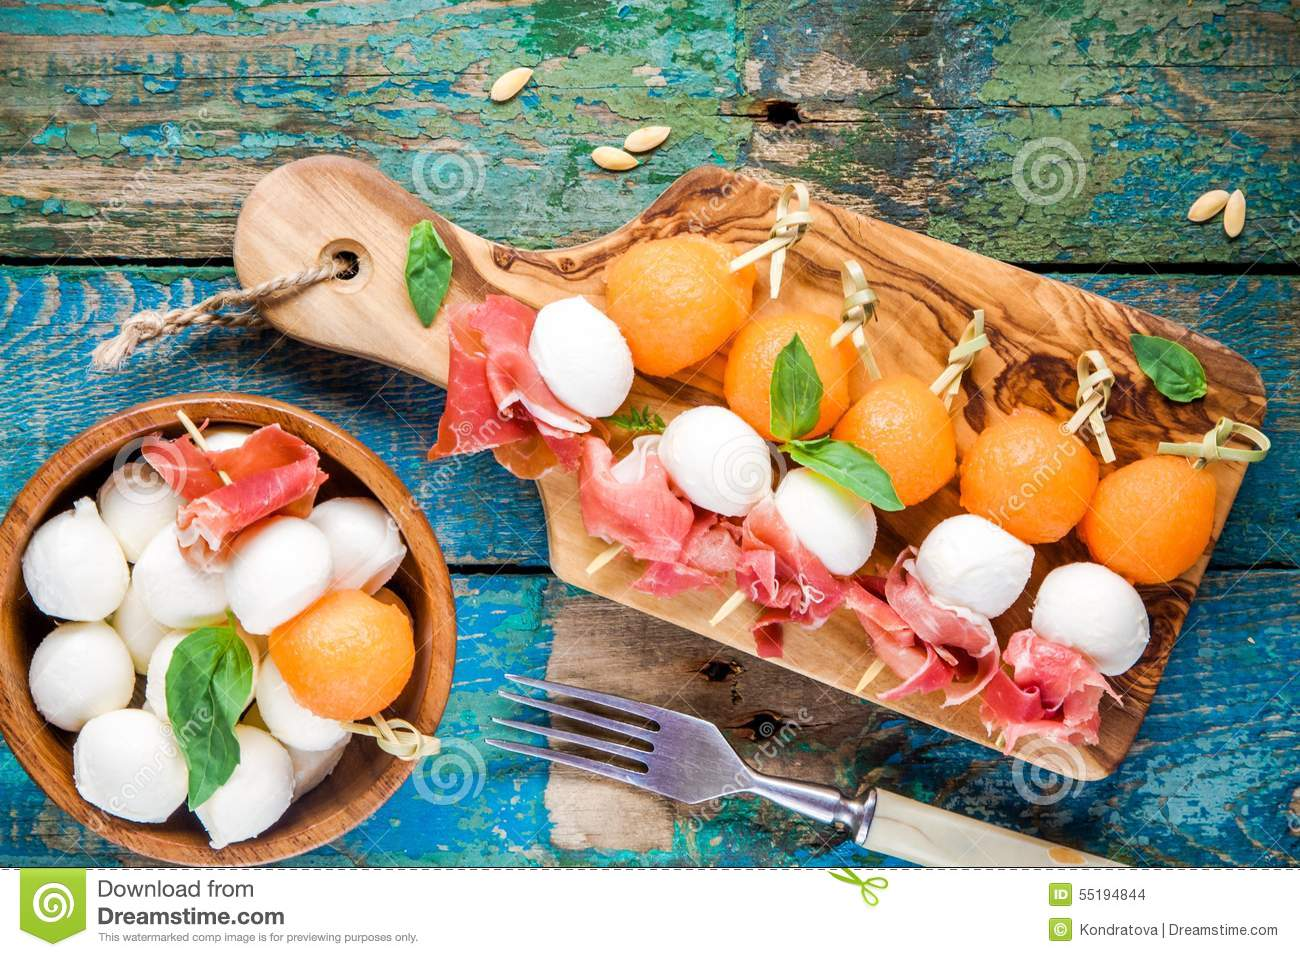 Mozzarella and prosciutto with melon canapes with basil on for Prosciutto and melon canape